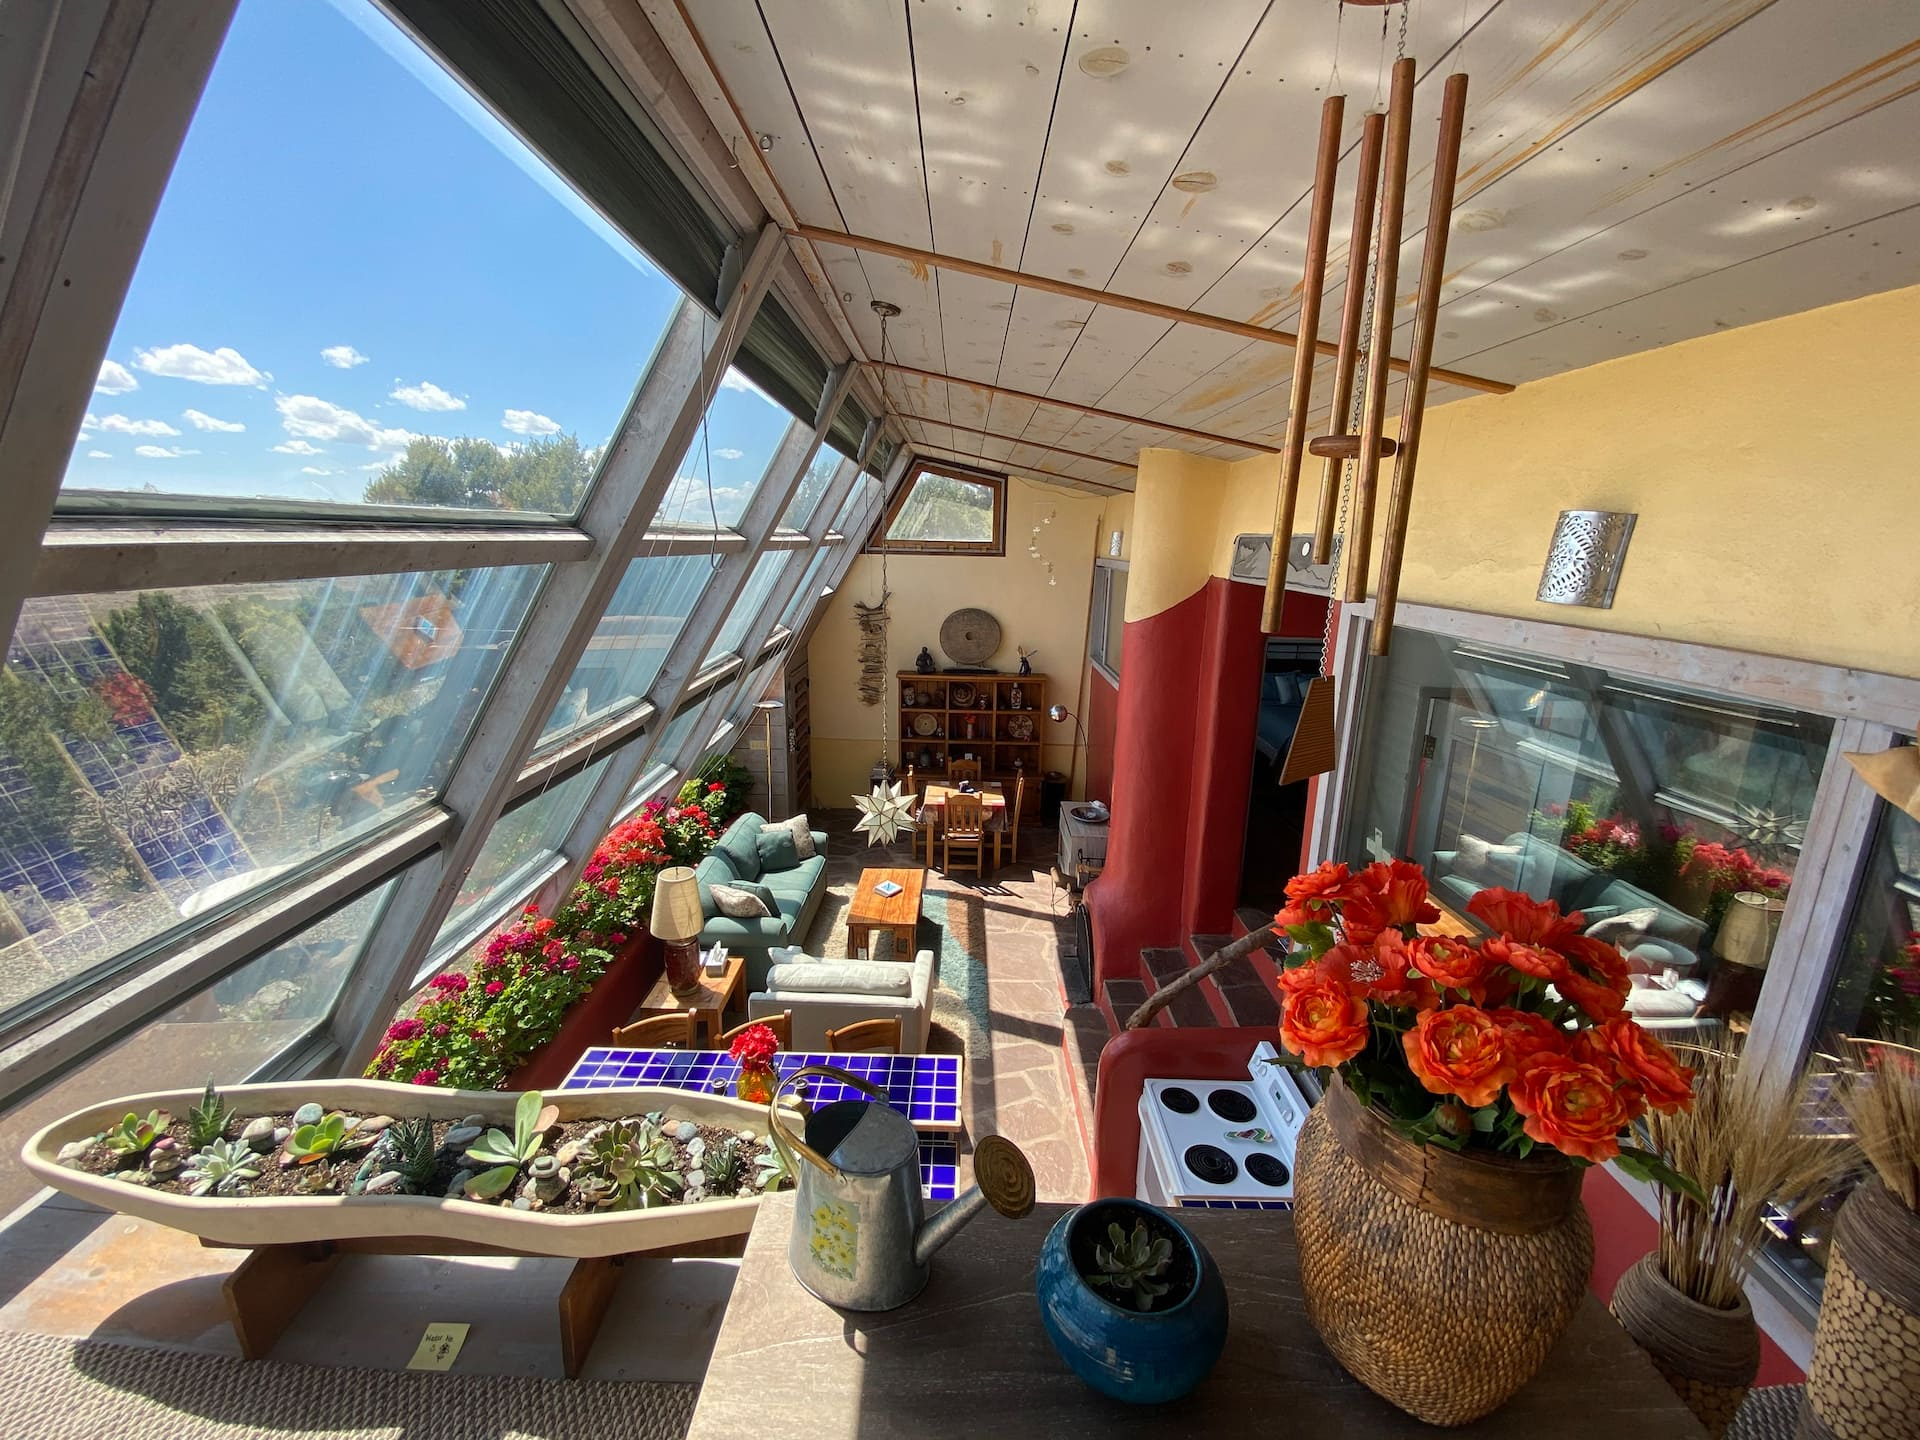 the Artsy Earthship Airbnb in New Mexico